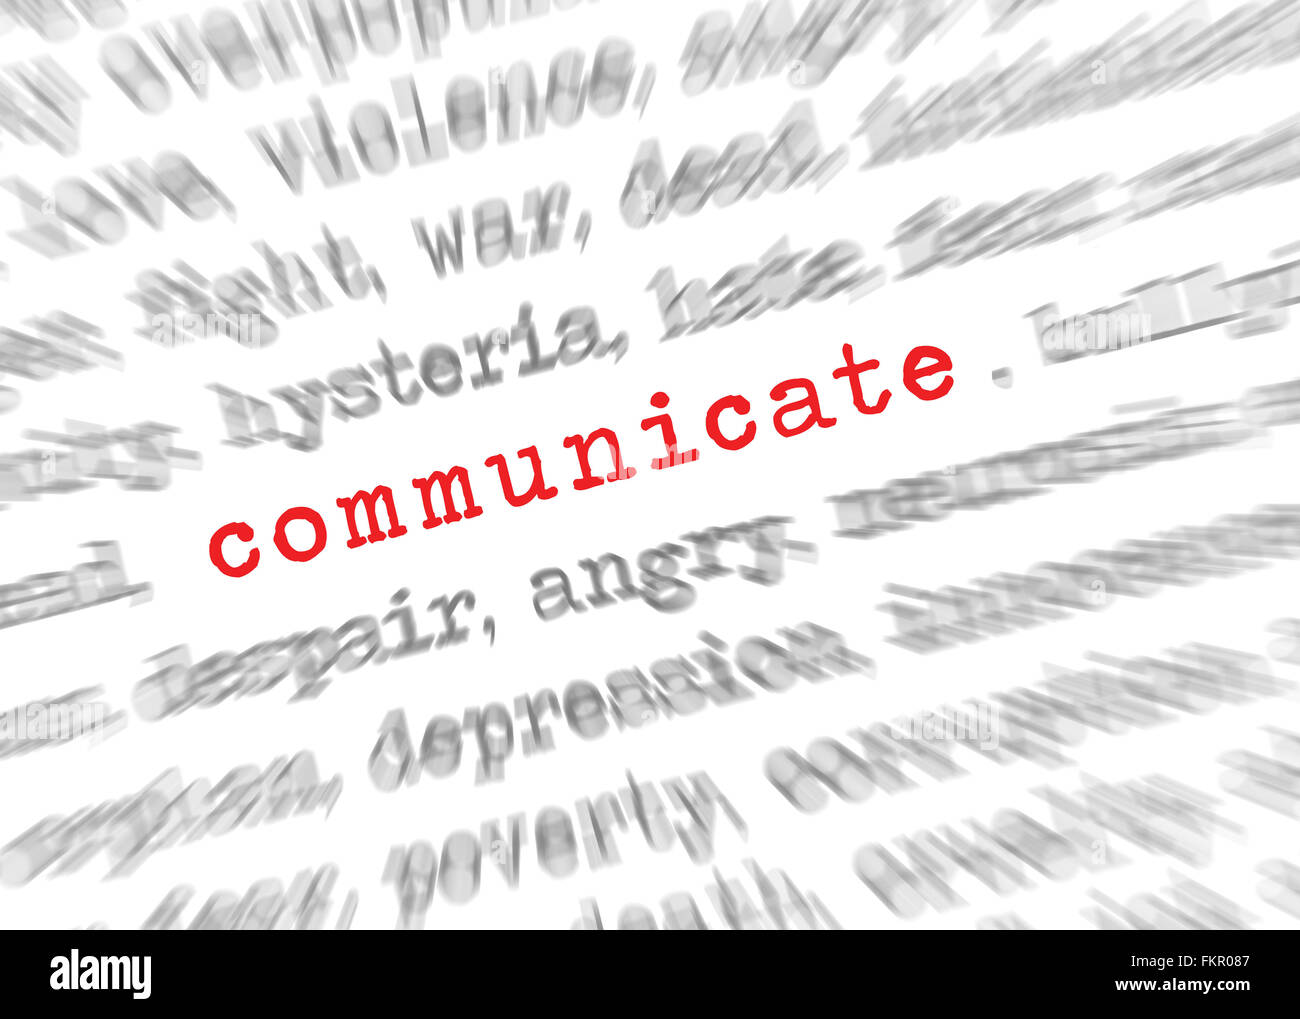 Blured text zoom effect with focus on communicate - Stock Image